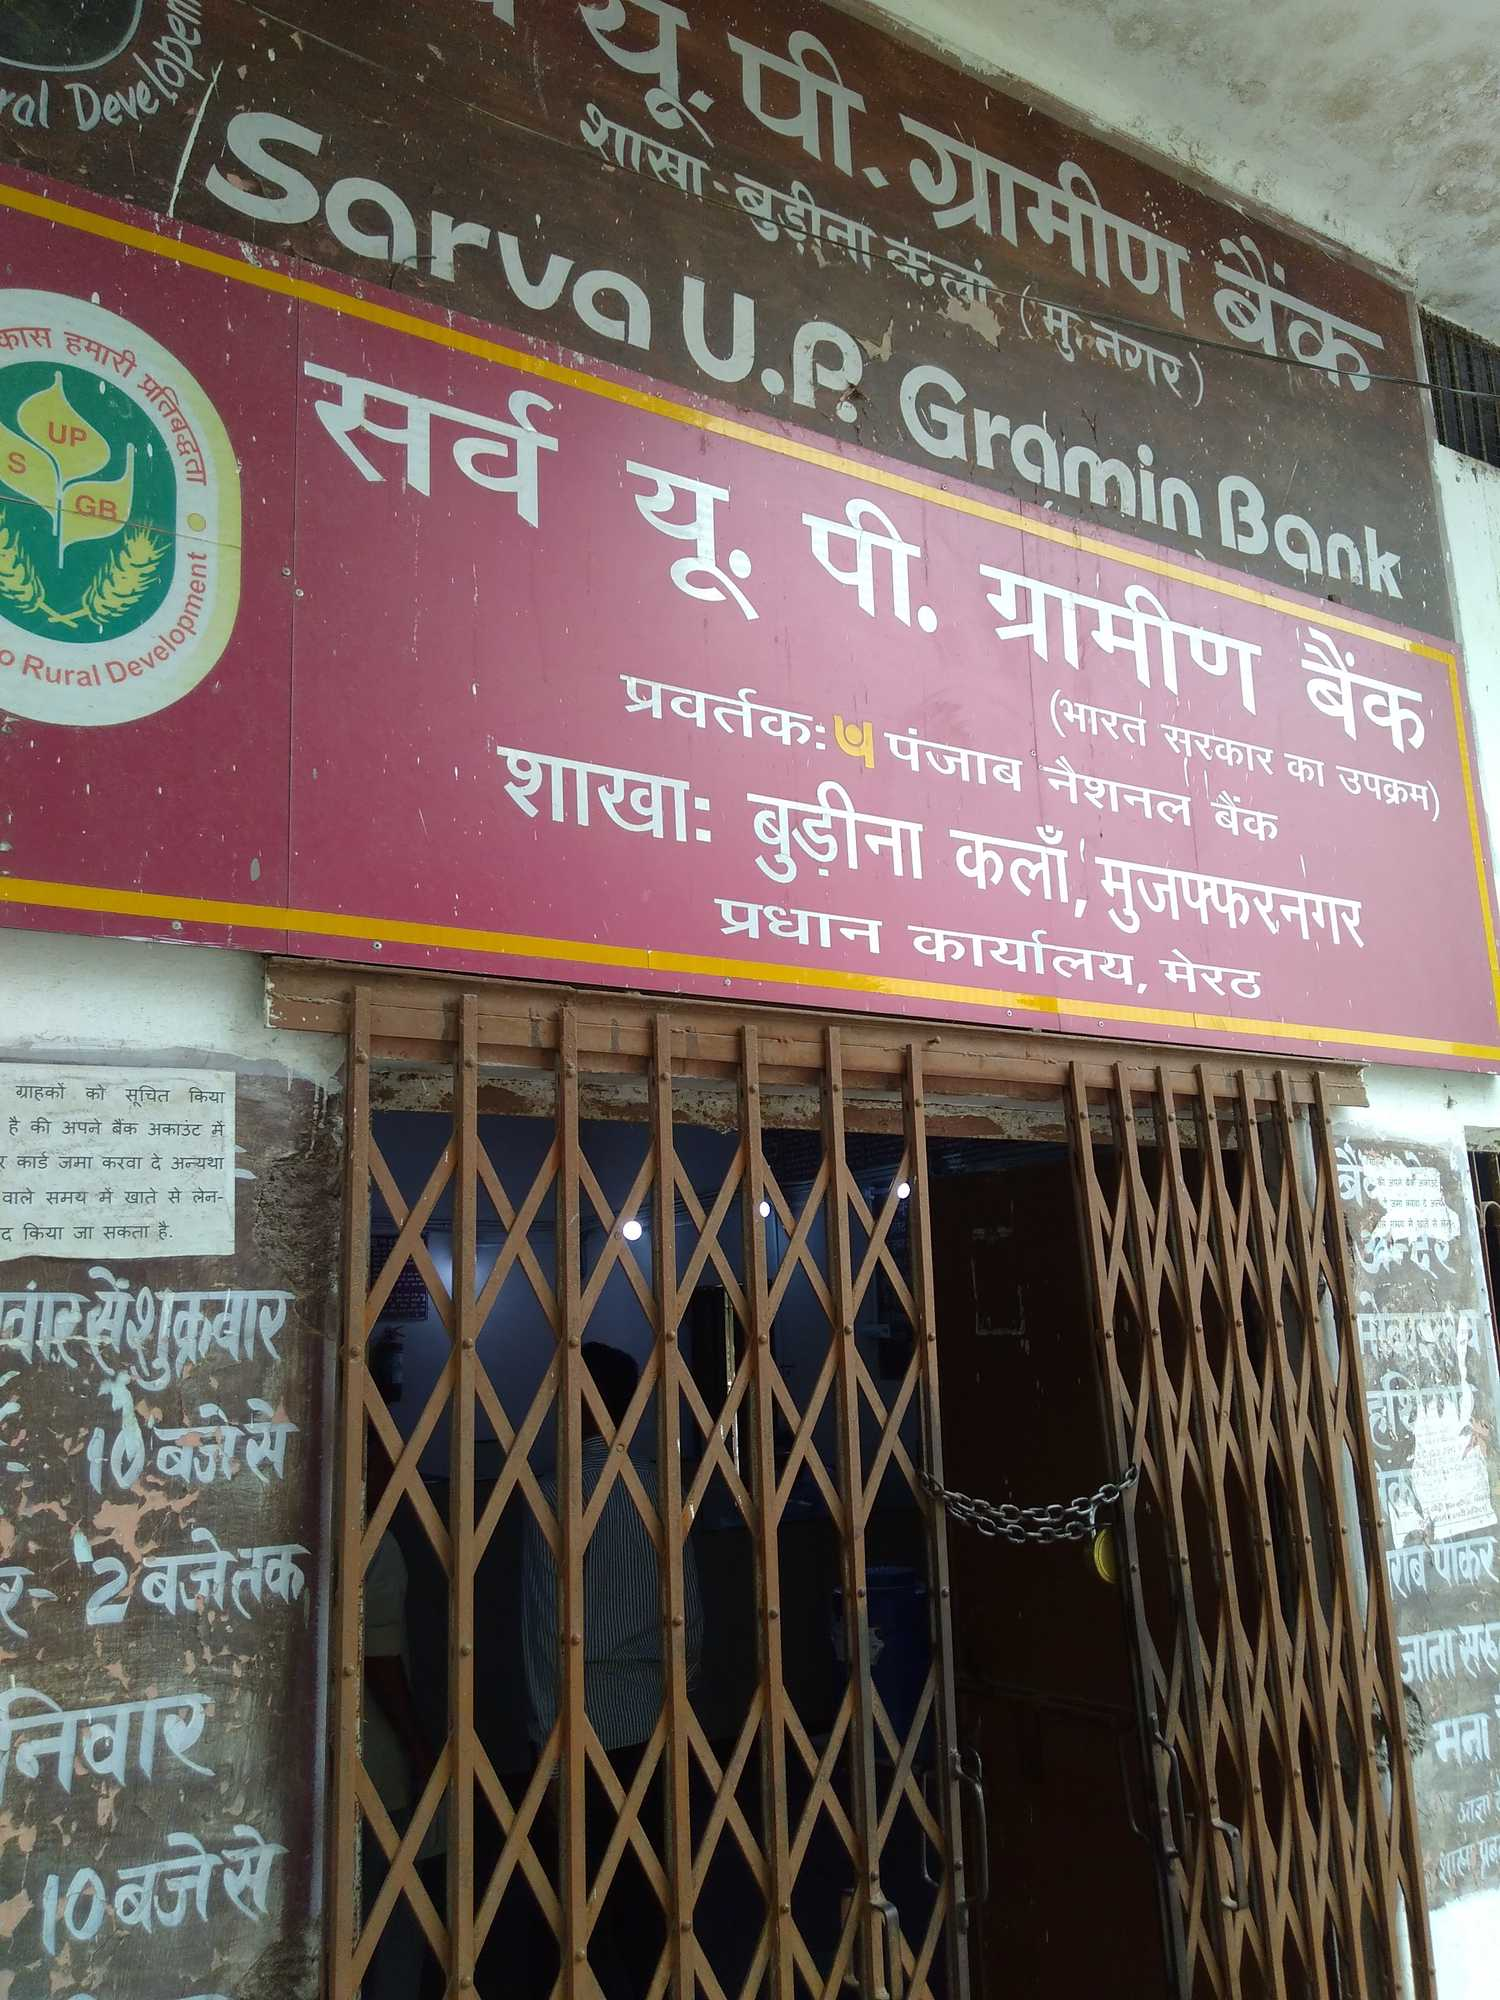 Sarva UP Gramin Bank wiki.